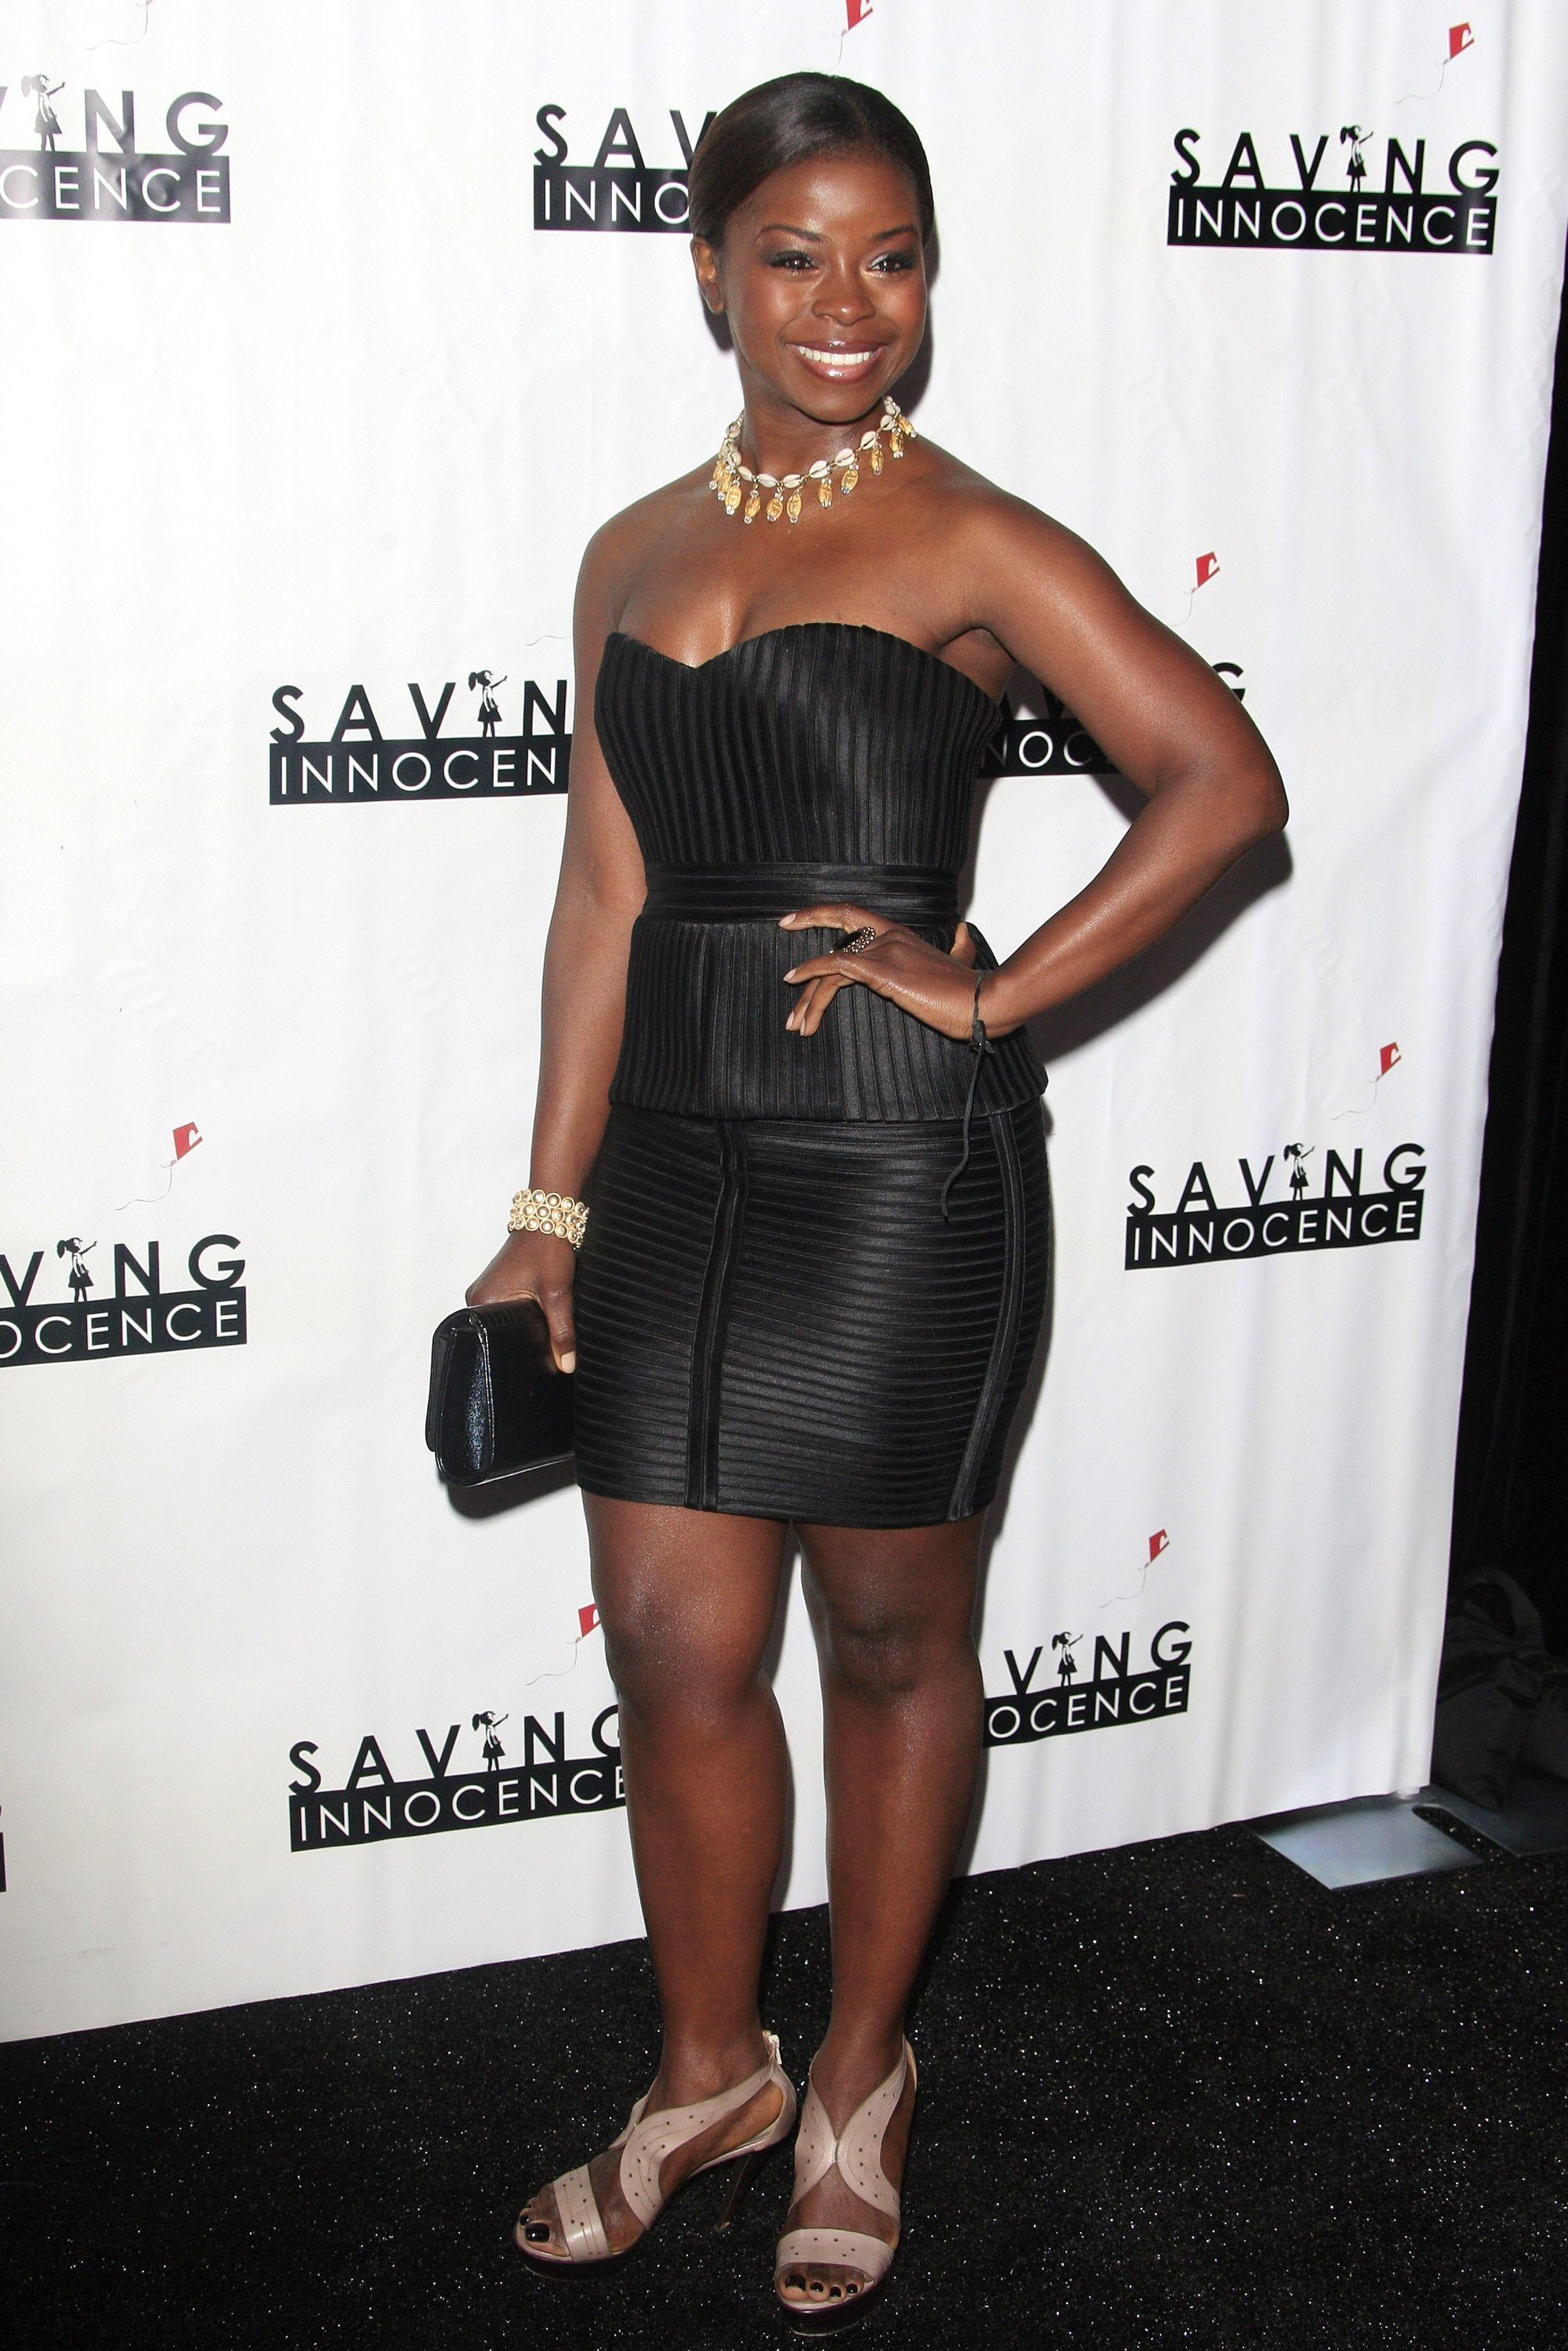 Erica Tazel Husband / Erica tazel at the 2nd annual saving innocence gala at the crossing on december 5, 2013 in los angeles, ca.